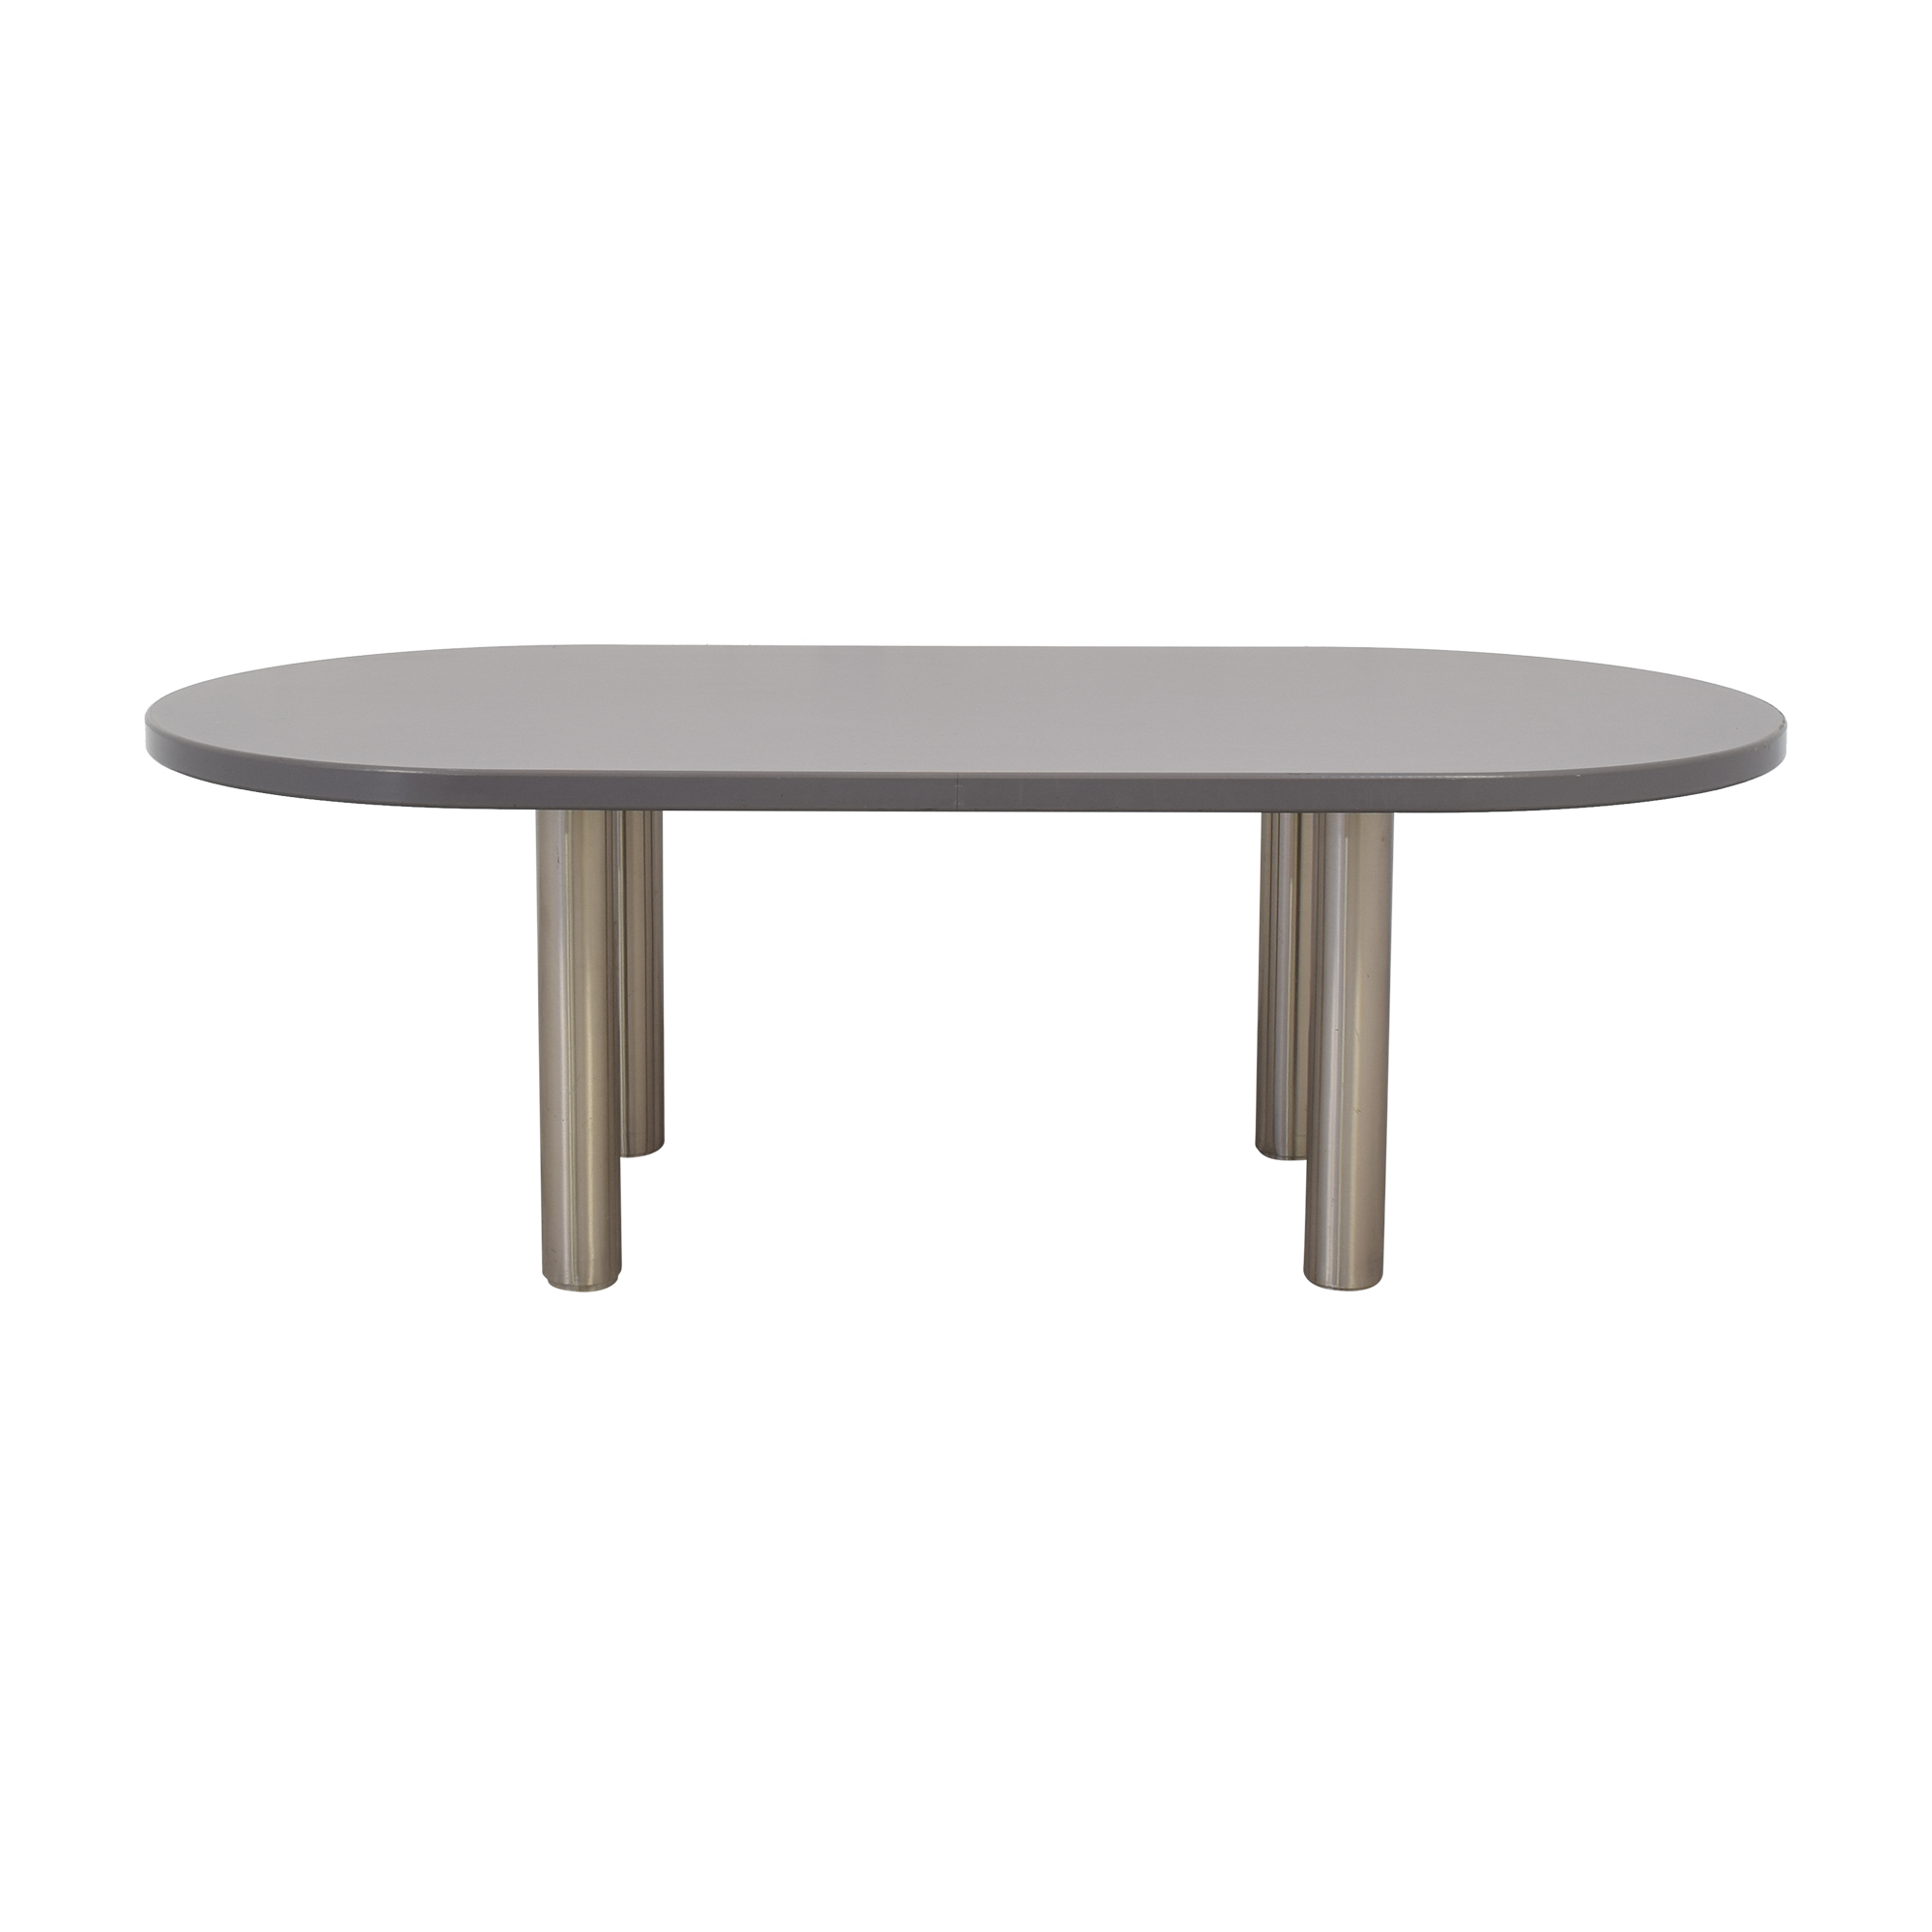 Knoll Knoll Reff Profile Meeting Table grey